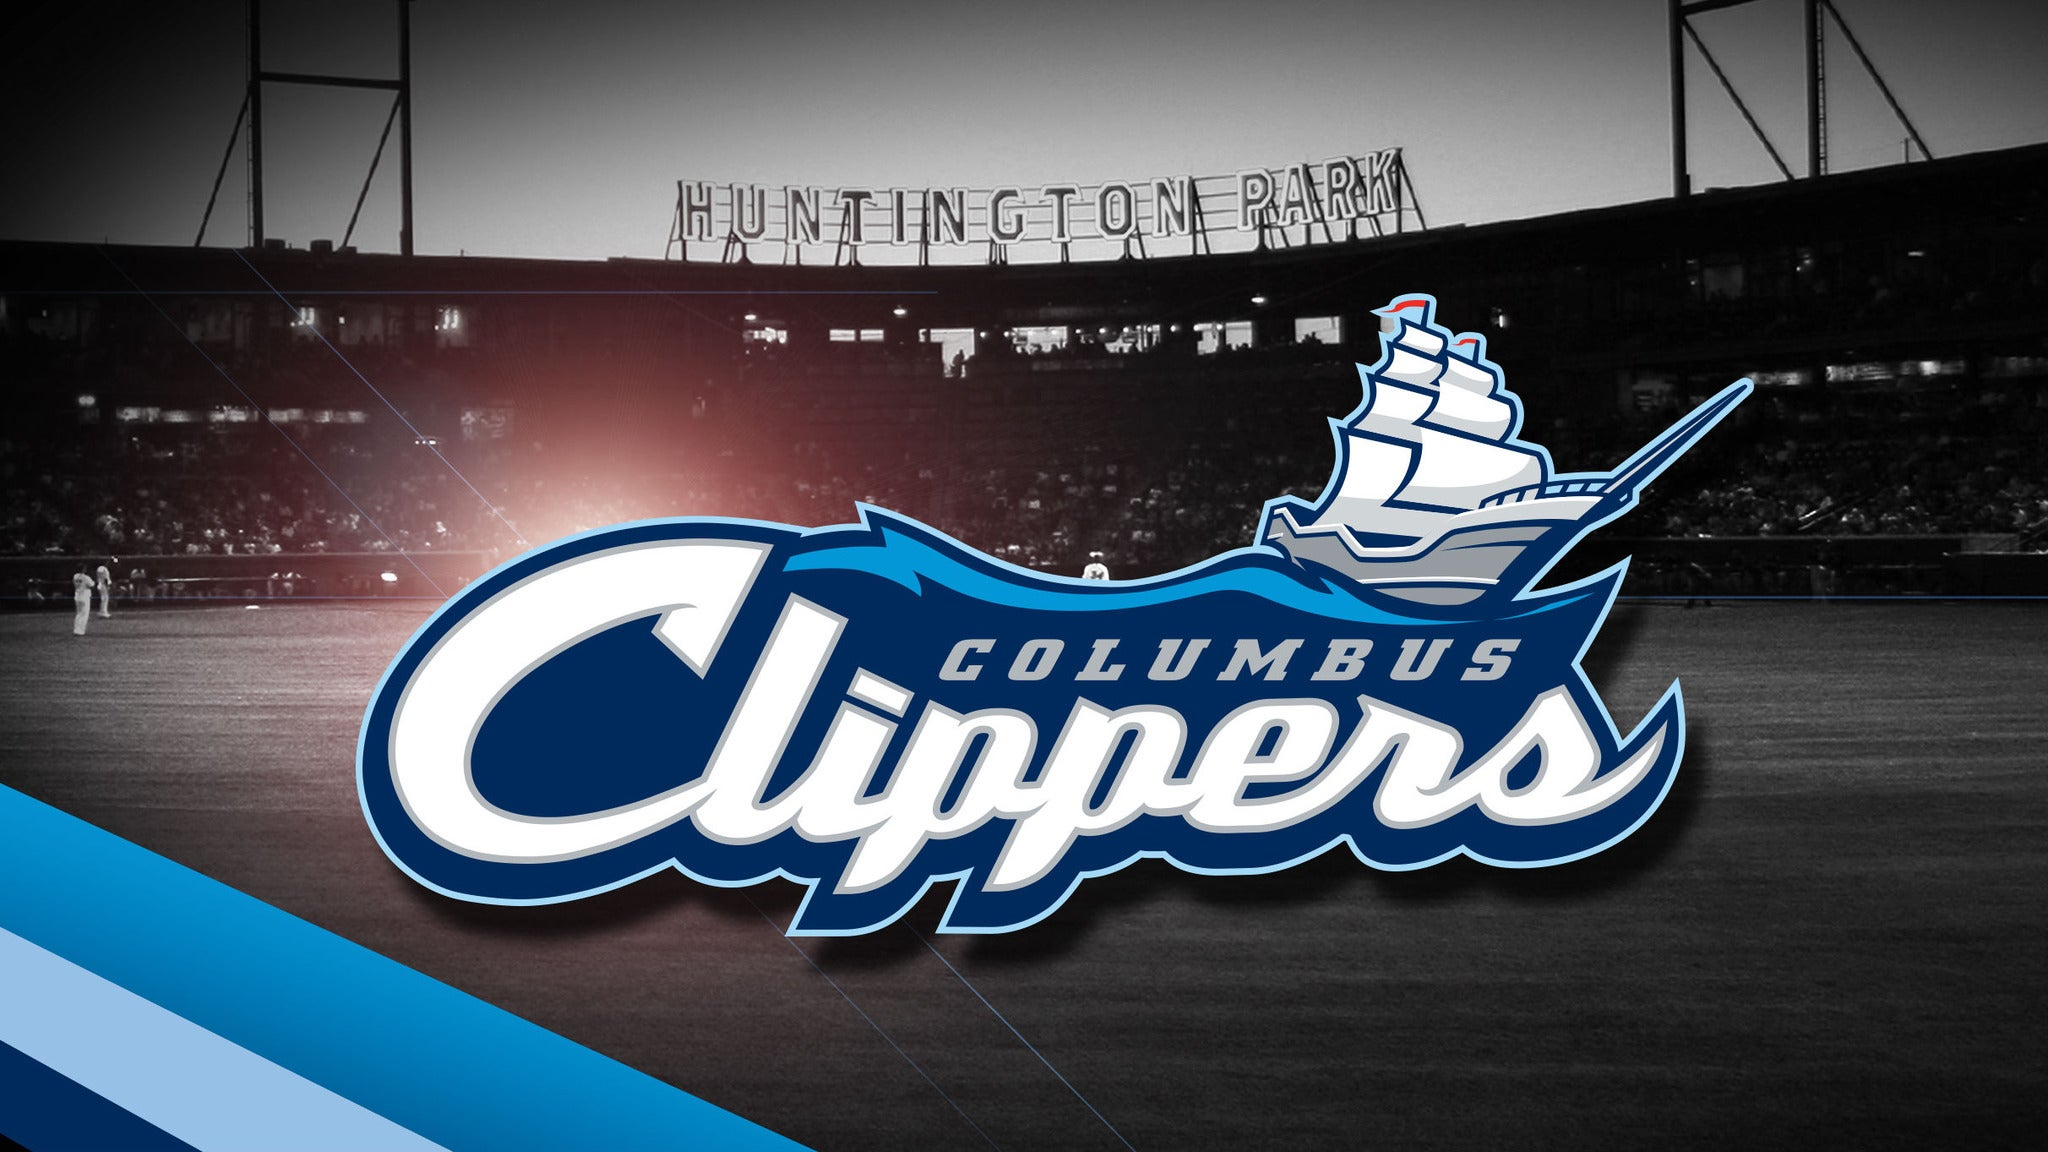 Columbus Clippers vs. Norfolk Tides at Huntington Park